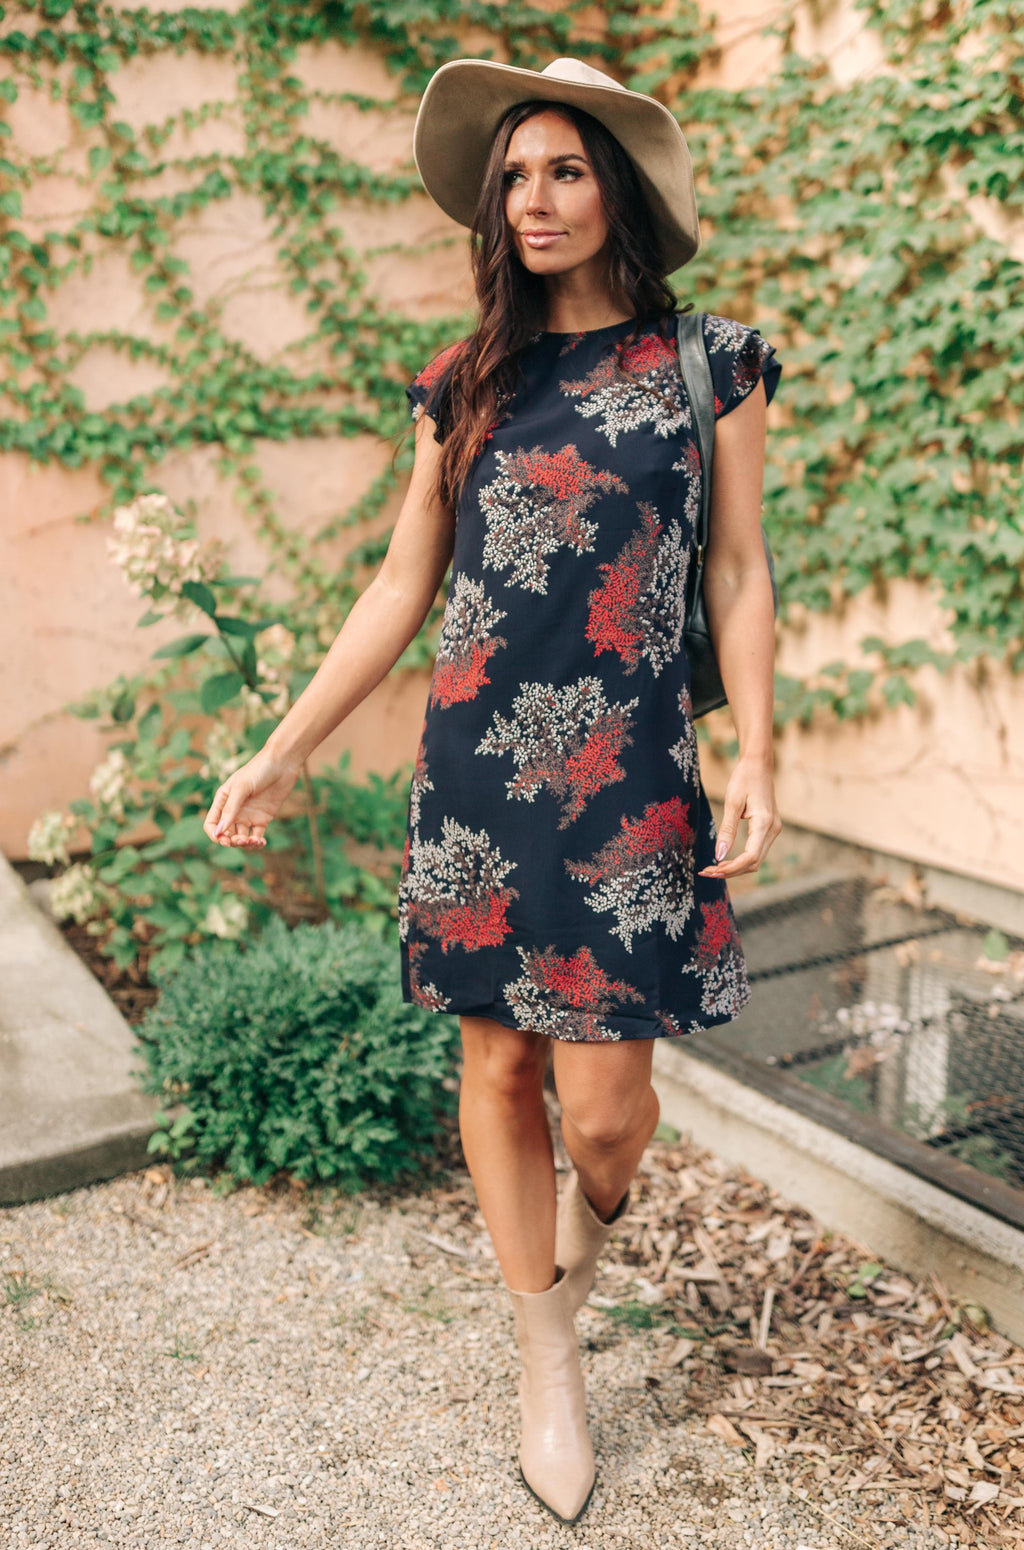 Prim and Proper Dress-10-6-2020, 1XL, 2XL, 3XL, BFCM2020, Dresses, Group A, Group B, Group C, Group D, Group S, Group T, Large, Medium, Plus, Small, XL, XS-Womens Artisan USA American Made Clothing Accessories